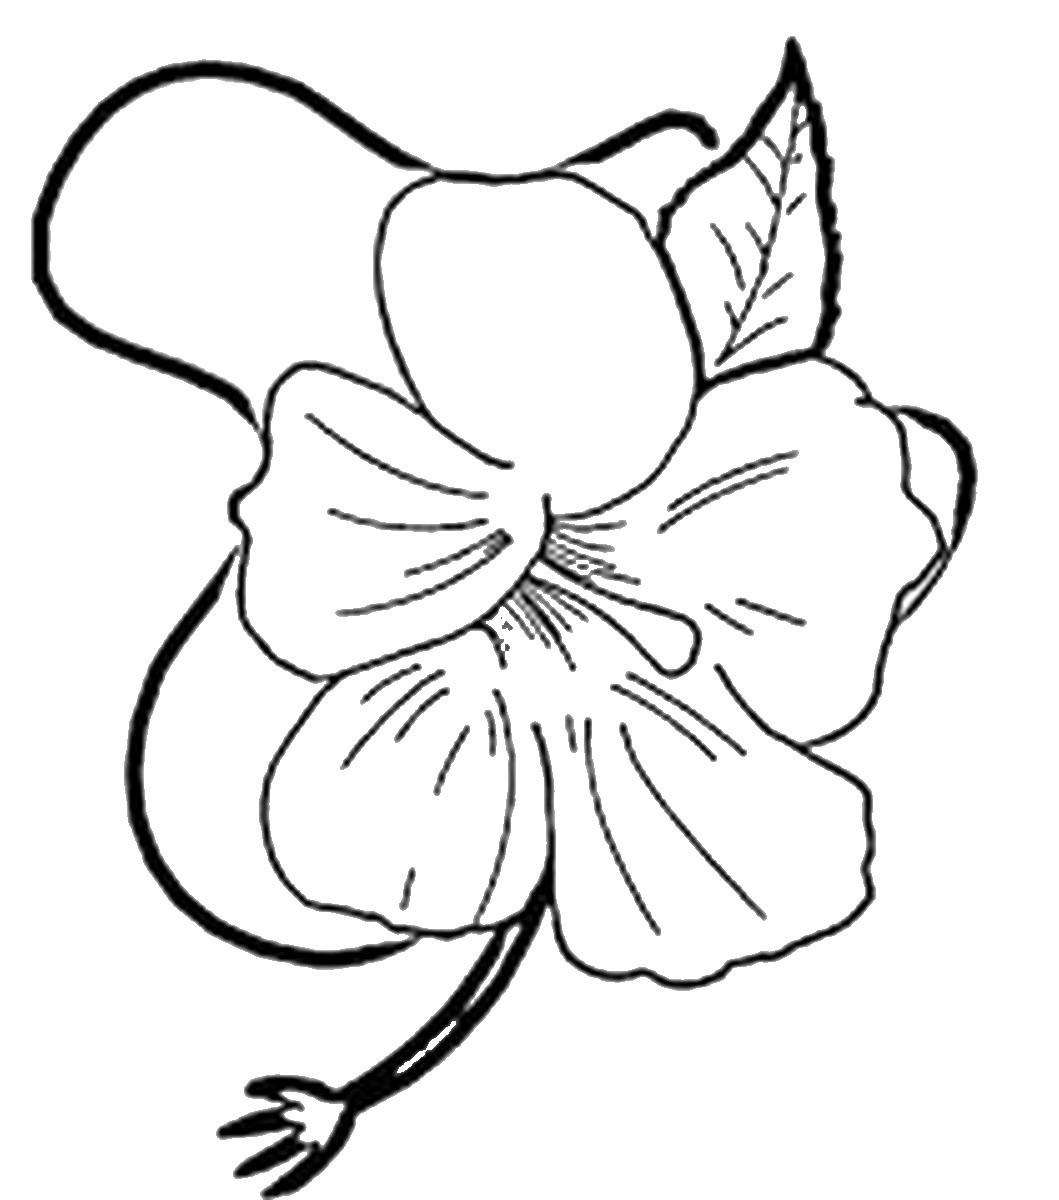 luau coloring pages 17 best hawaii luau images on pinterest coloring books pages coloring luau